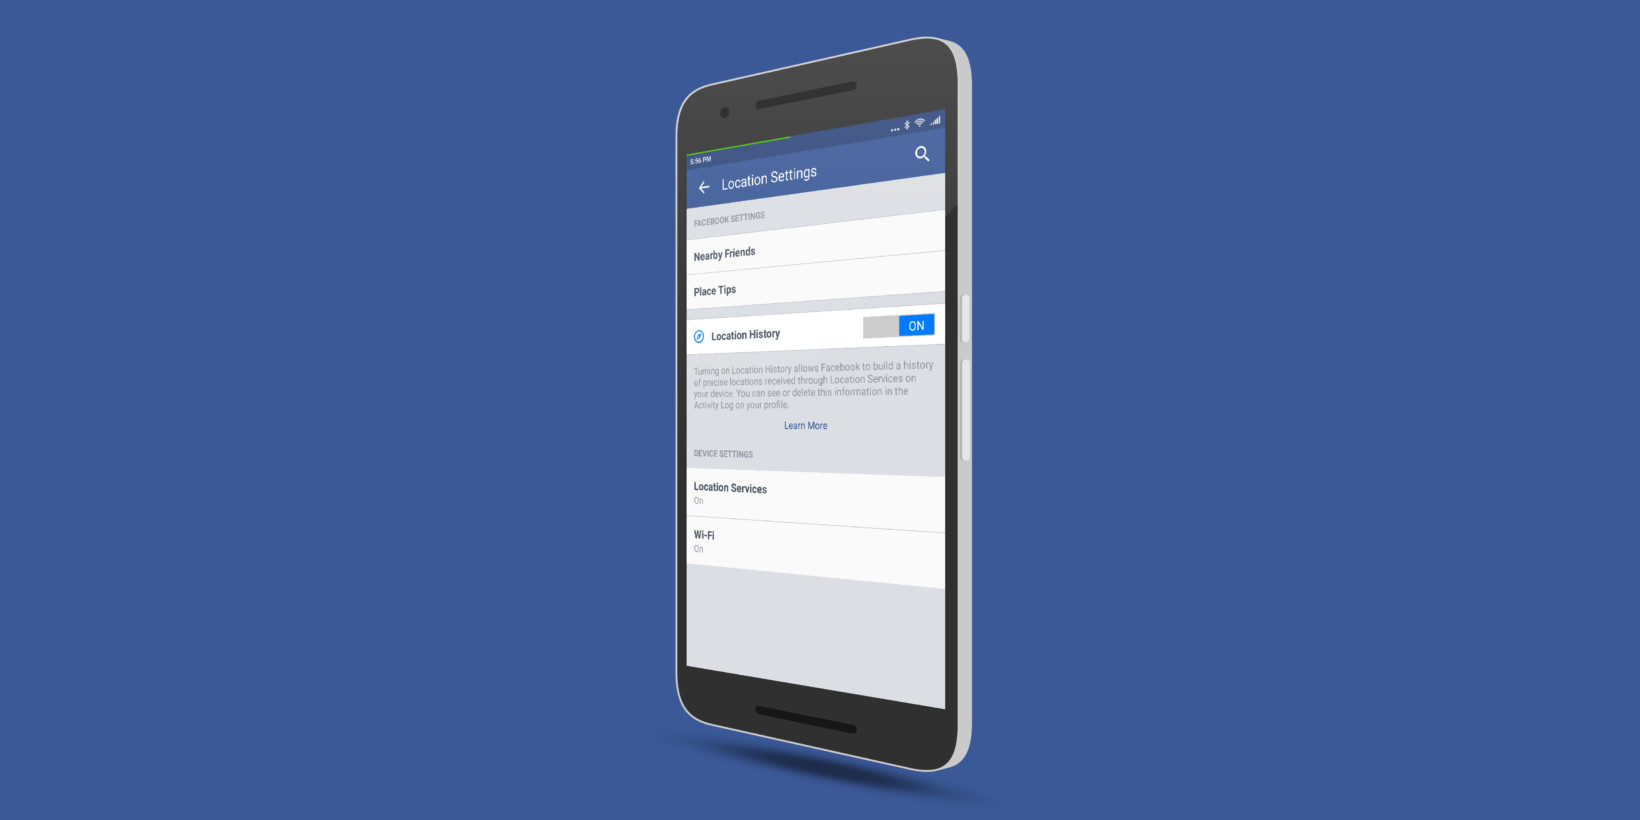 Why you shouldn't let Facebook track your every move [Update